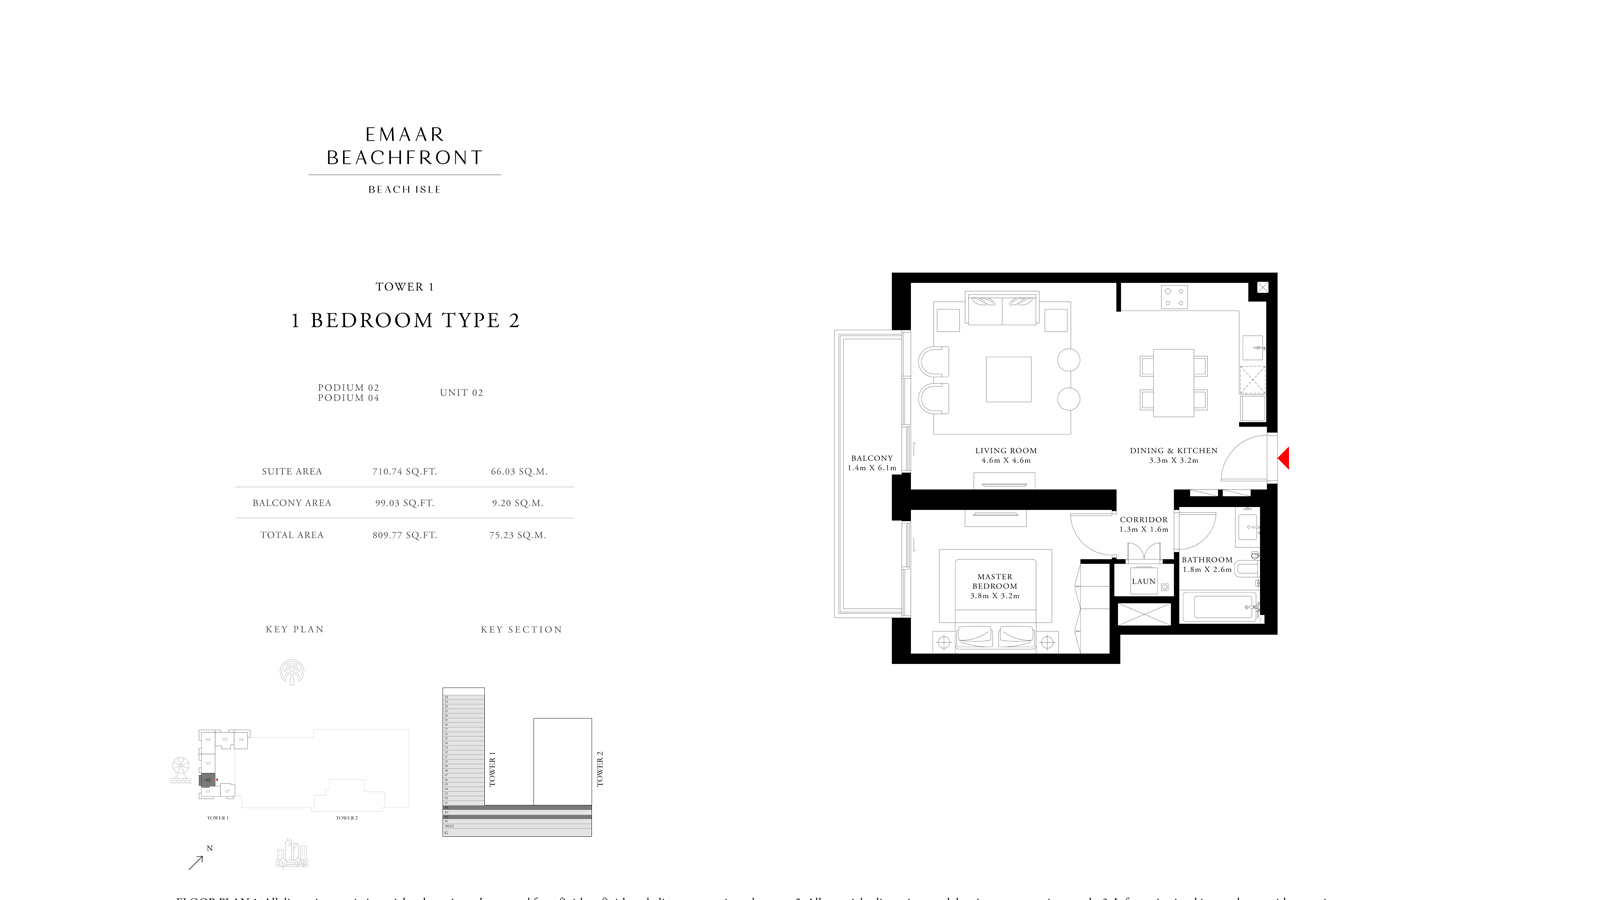 1 Bedroom Type 2 Tower 1, Size 809    sq. ft.